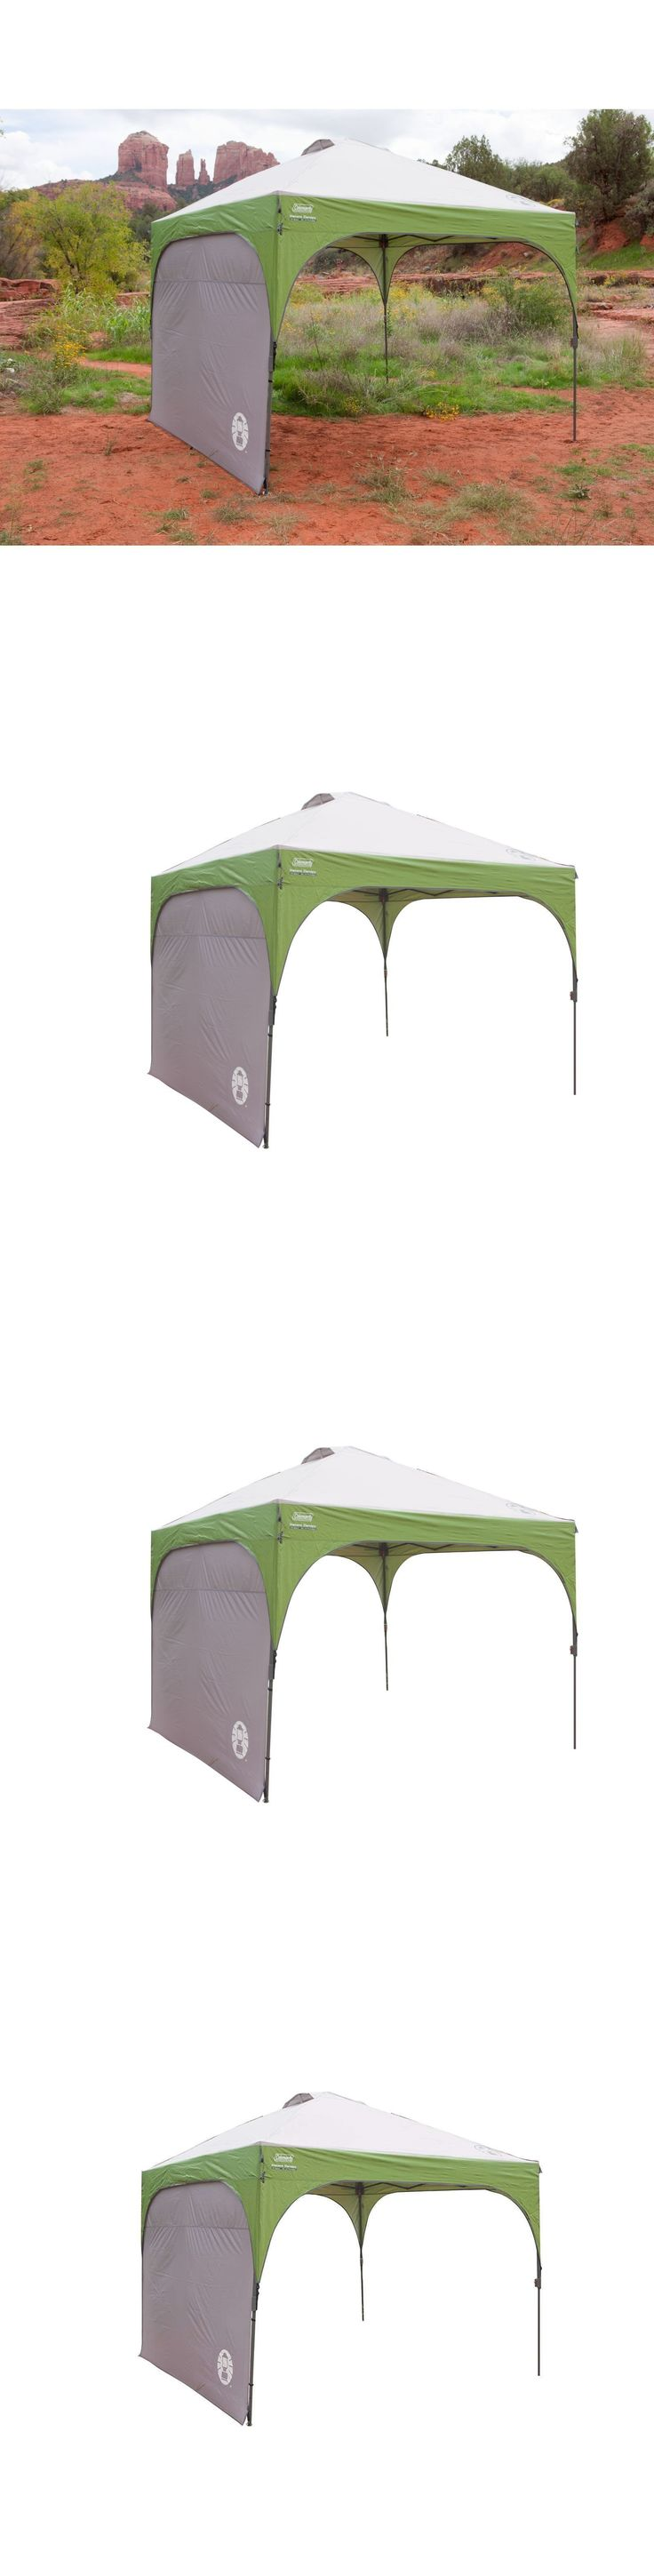 Tent and Canopy Accessories 36120: Beach Tent Shelter X-Large Sun Shade Canopy 10 X 10 Ft. Summer Camping Side Wall -> BUY IT NOW ONLY: $39.99 on eBay!